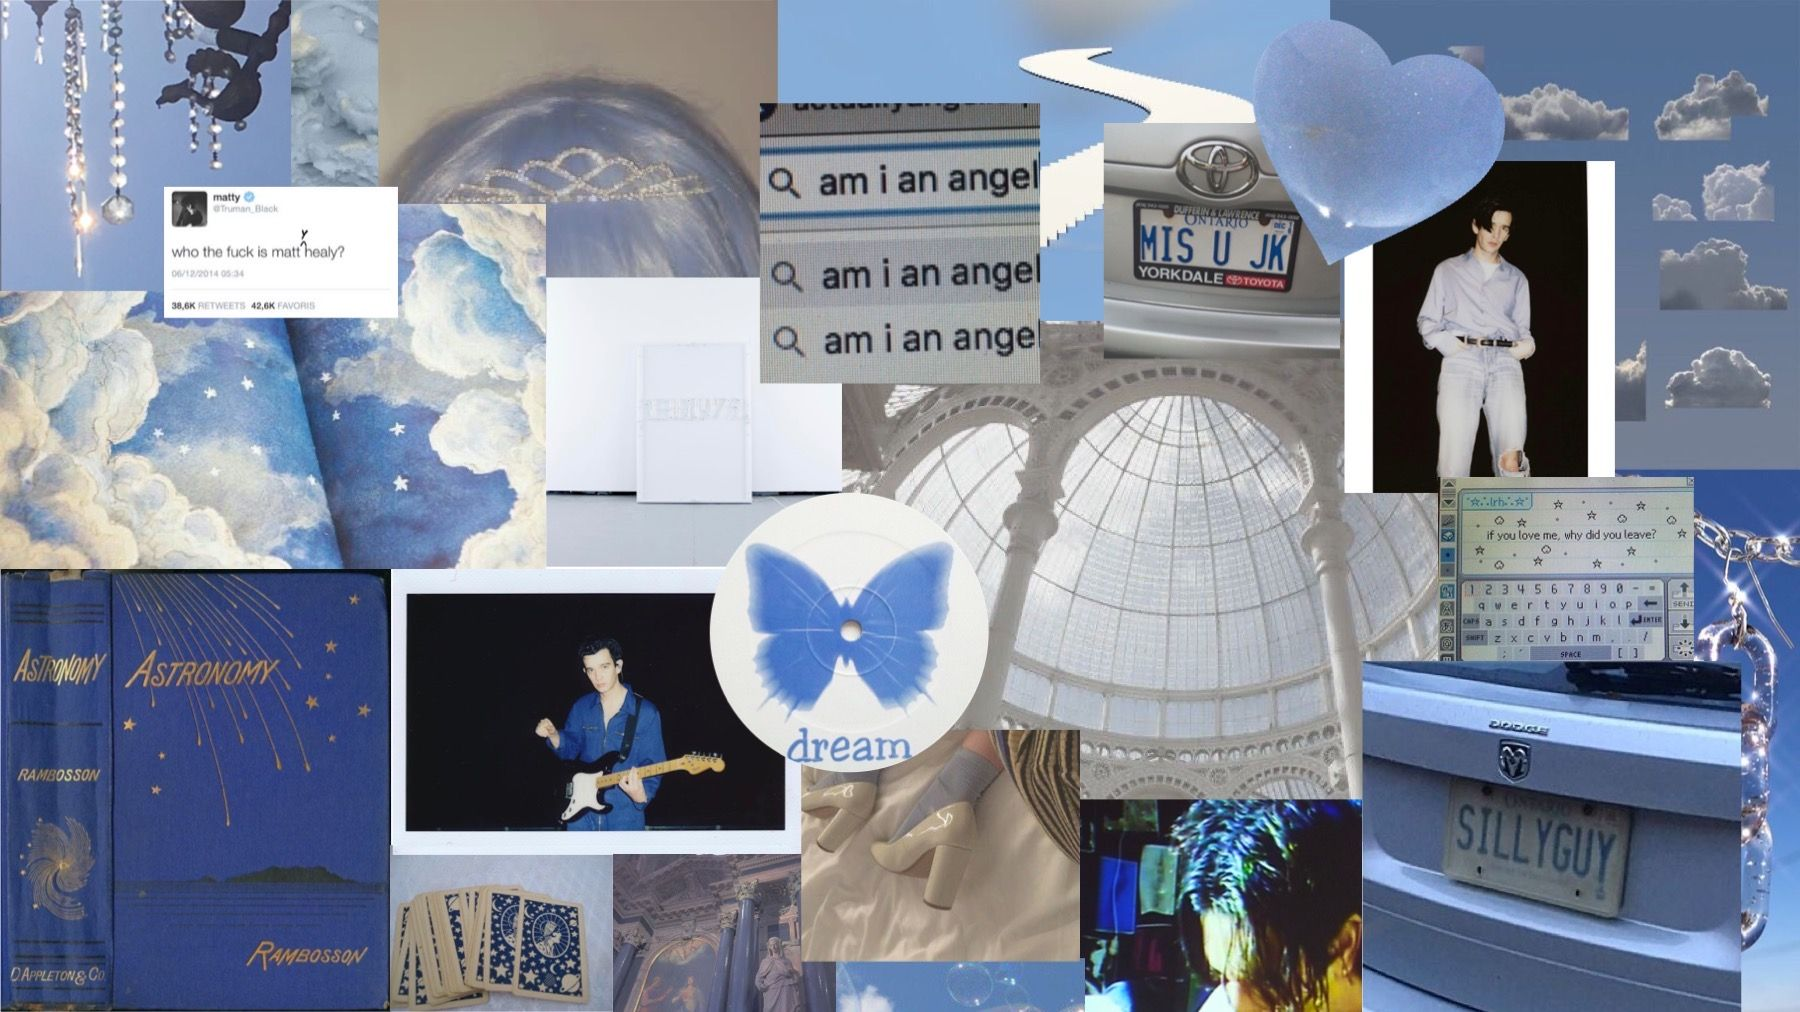 Angelic Blue Aesthetic Desktop Wallpaper X In 2020 Aesthetic Desktop Wallpaper Cool Blue Wallpaper The 1975 Wallpaper